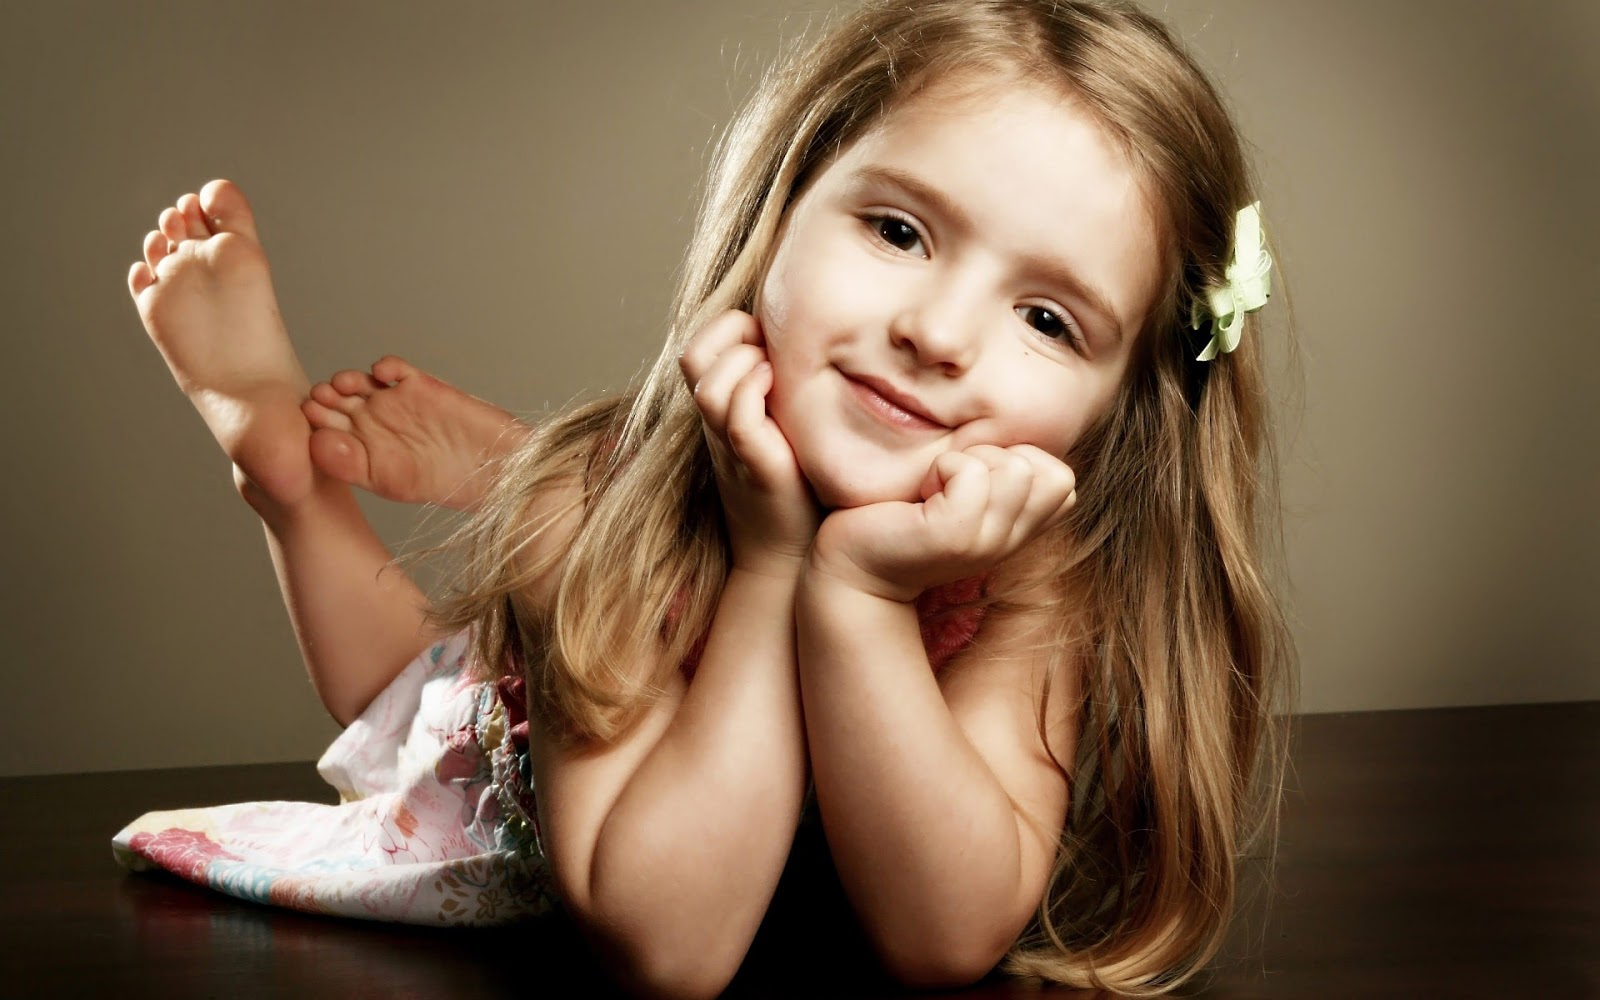 hd wallpapers cute kids hd wallpapers cute kids hd wallpapers 1600x1000